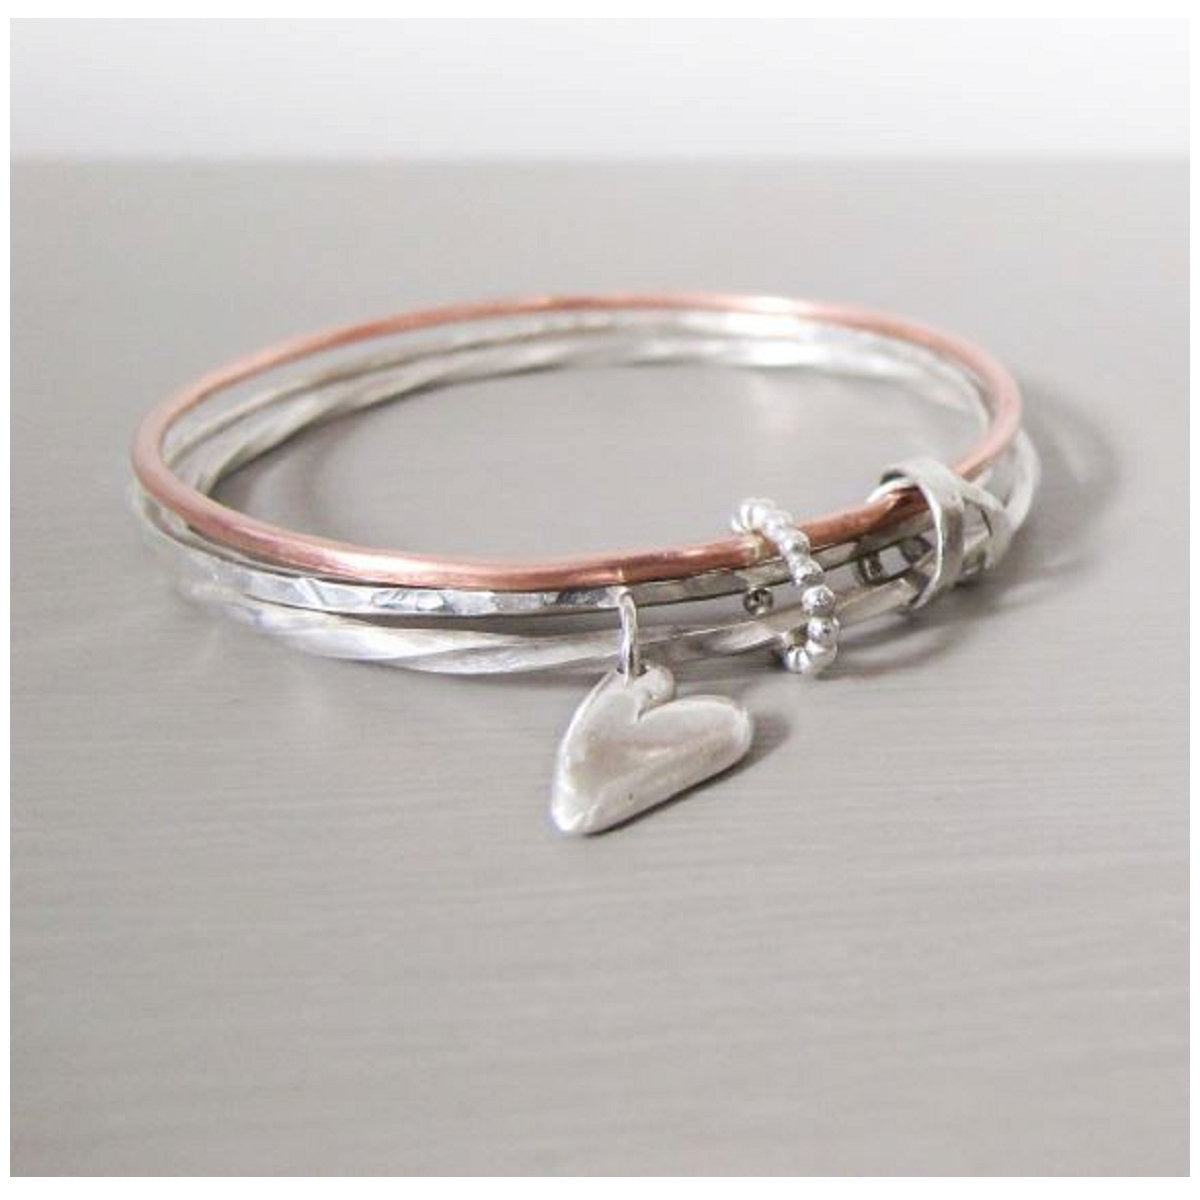 Rose gold and silver triple bangle